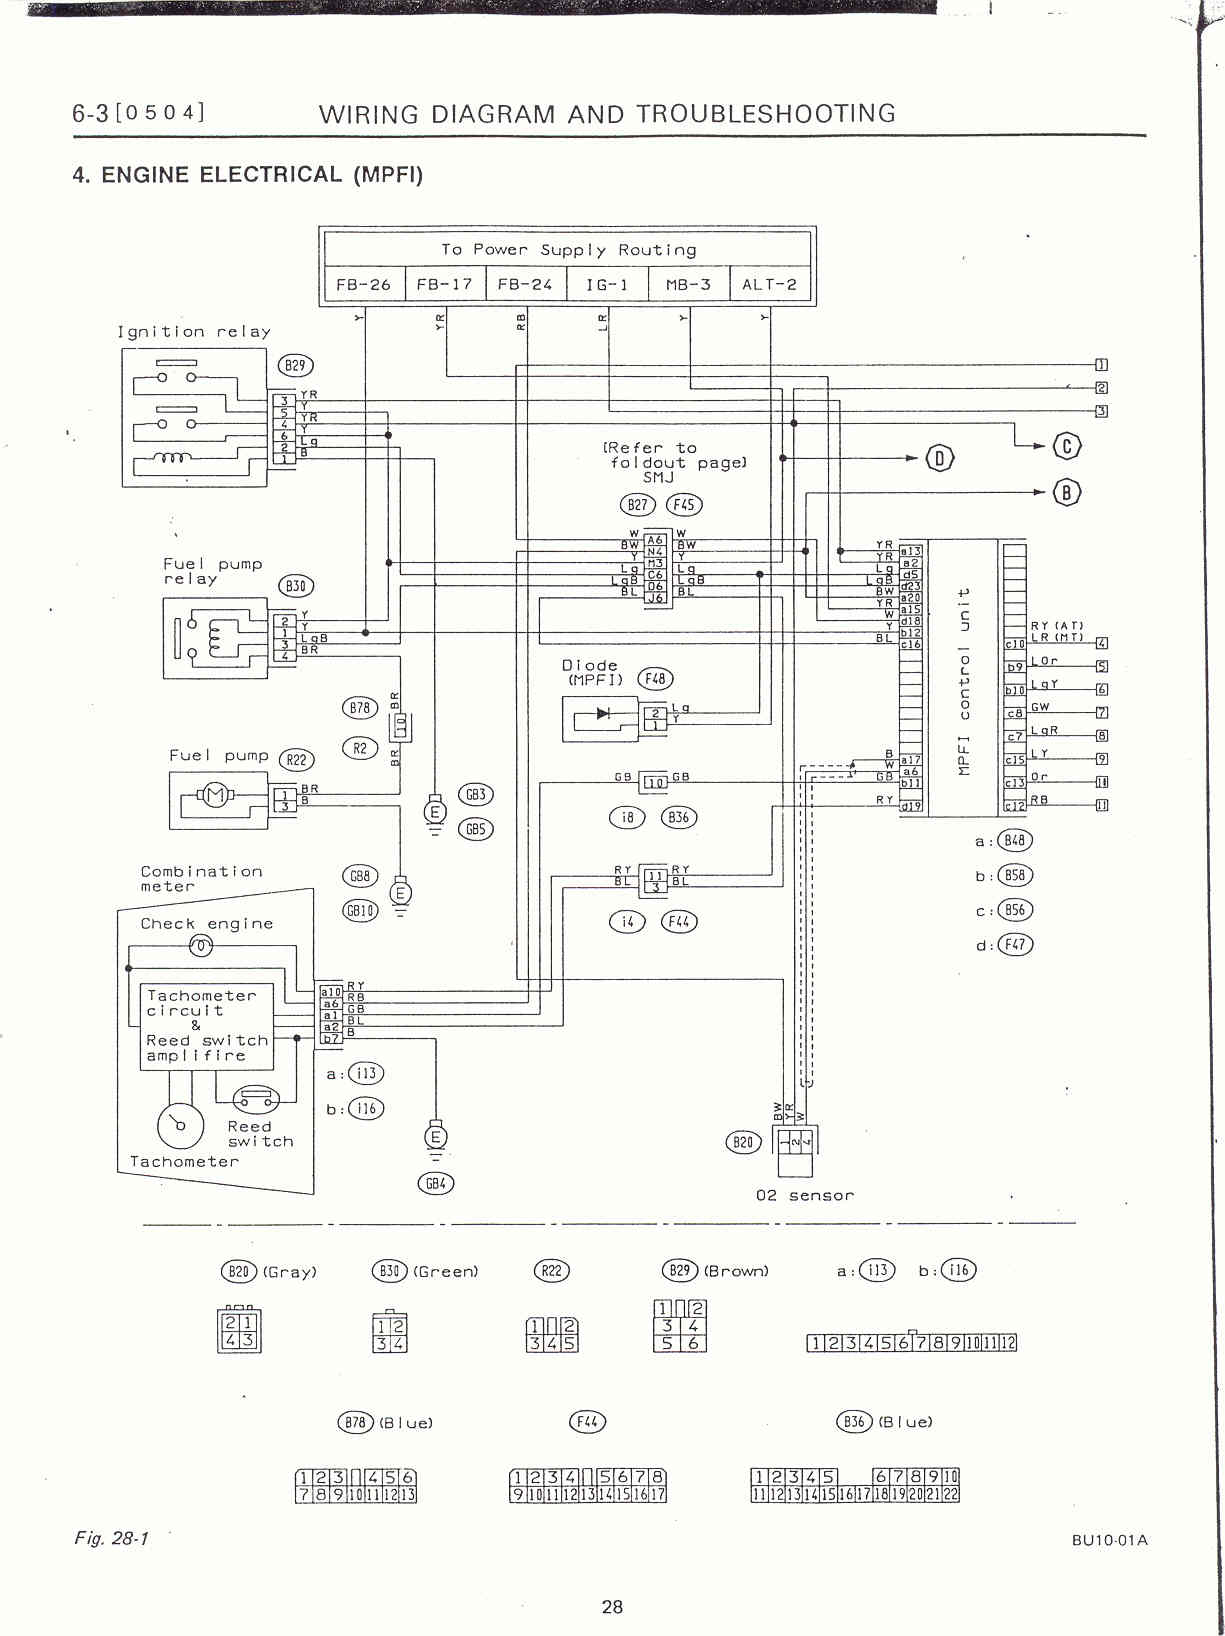 Model T Ford Wiring Harness Library Powerflex 40 Ethernet Diagram